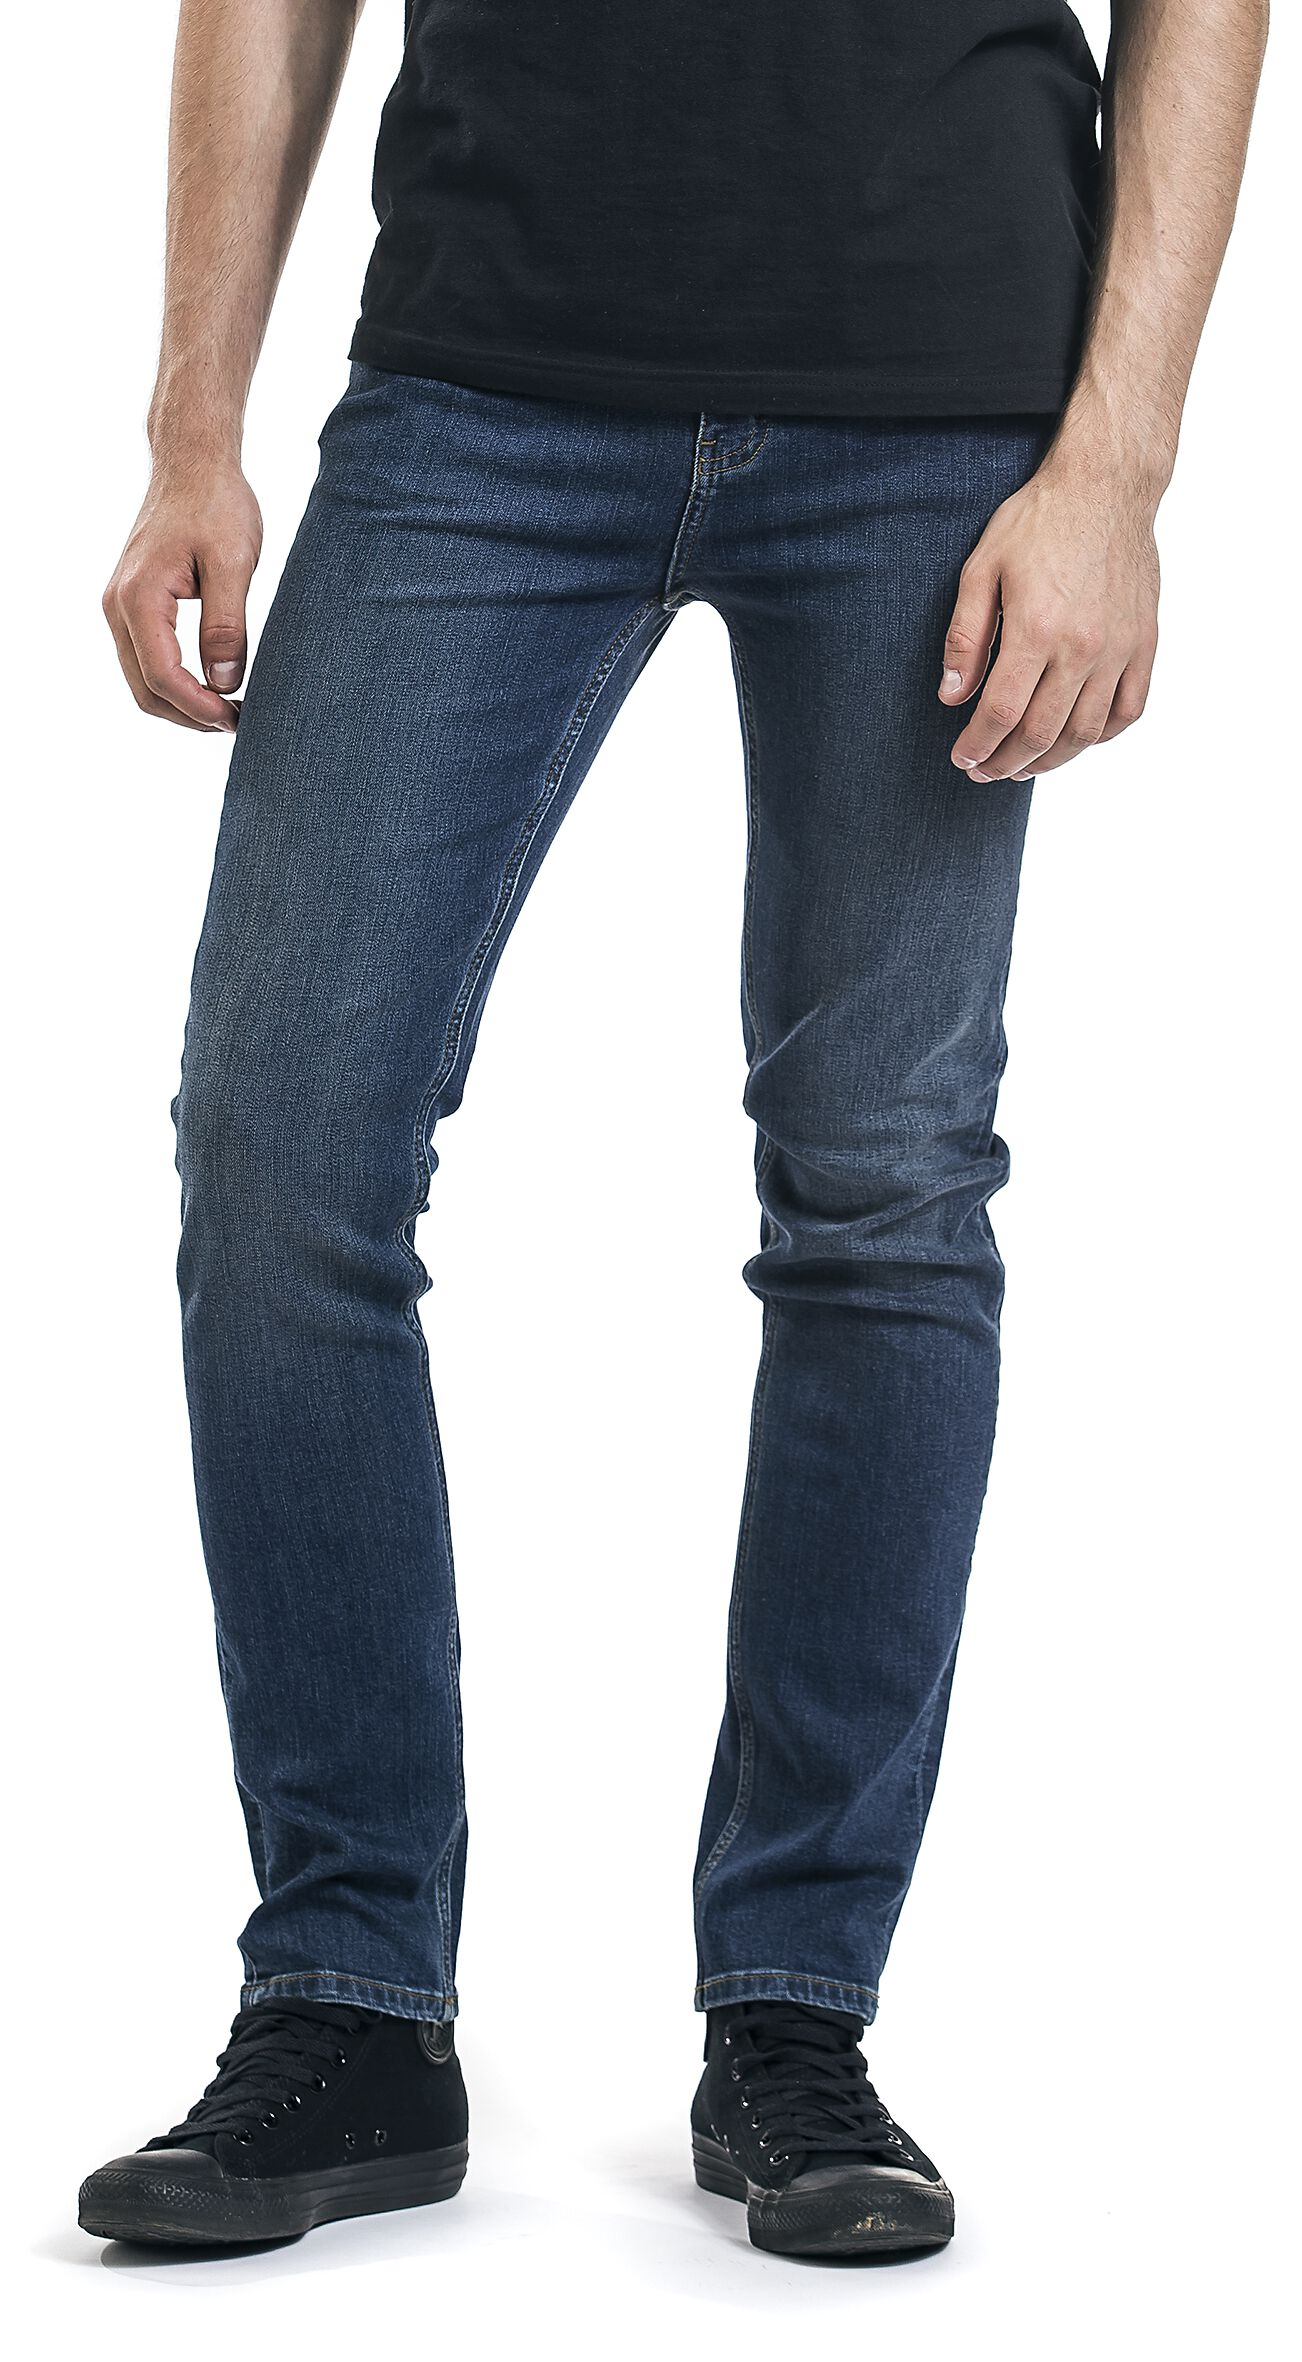 Tight - Pure Blue Jeans Buy online now